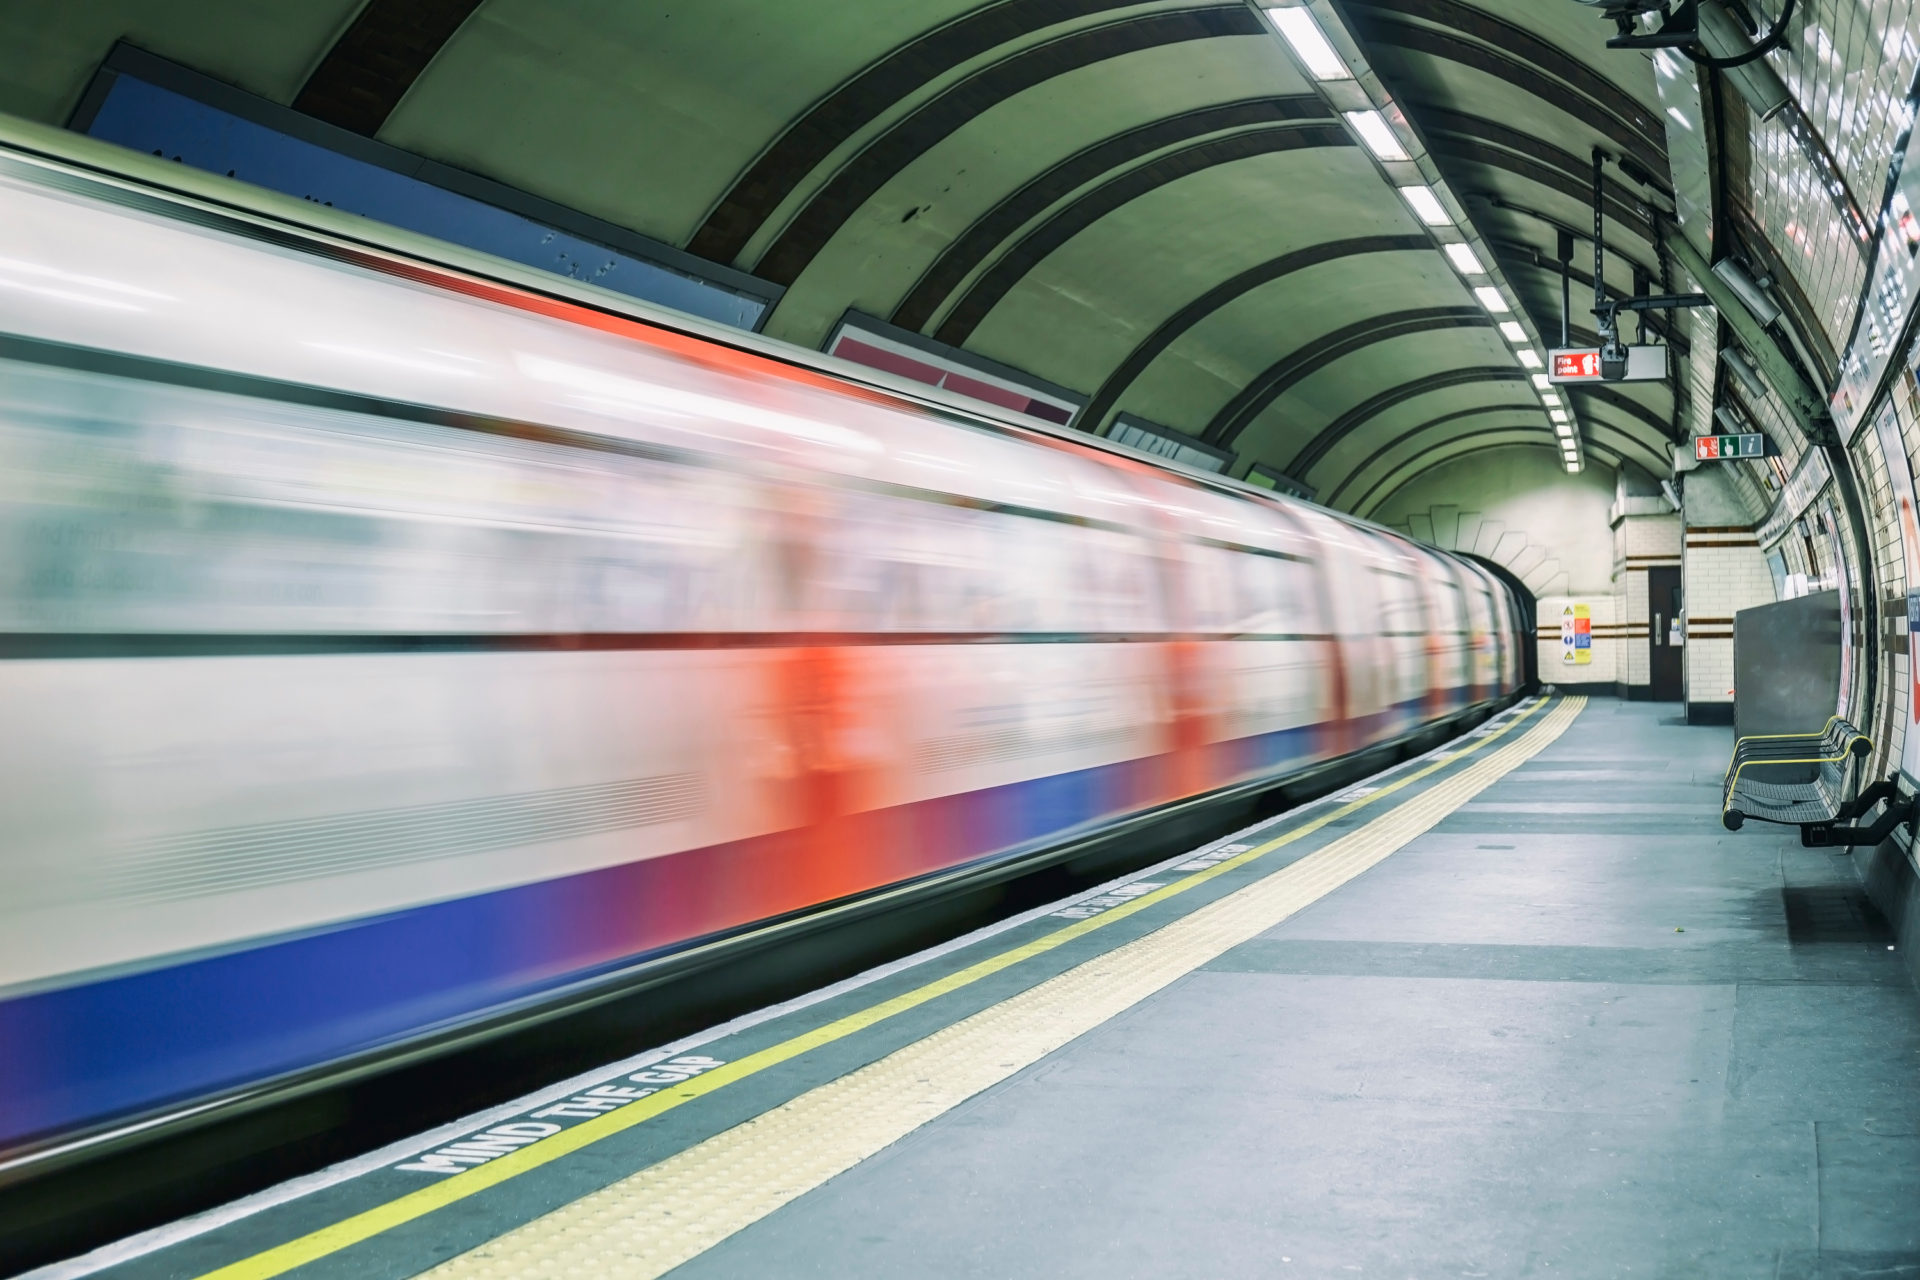 Tube leaving the platform at an underground station in London.